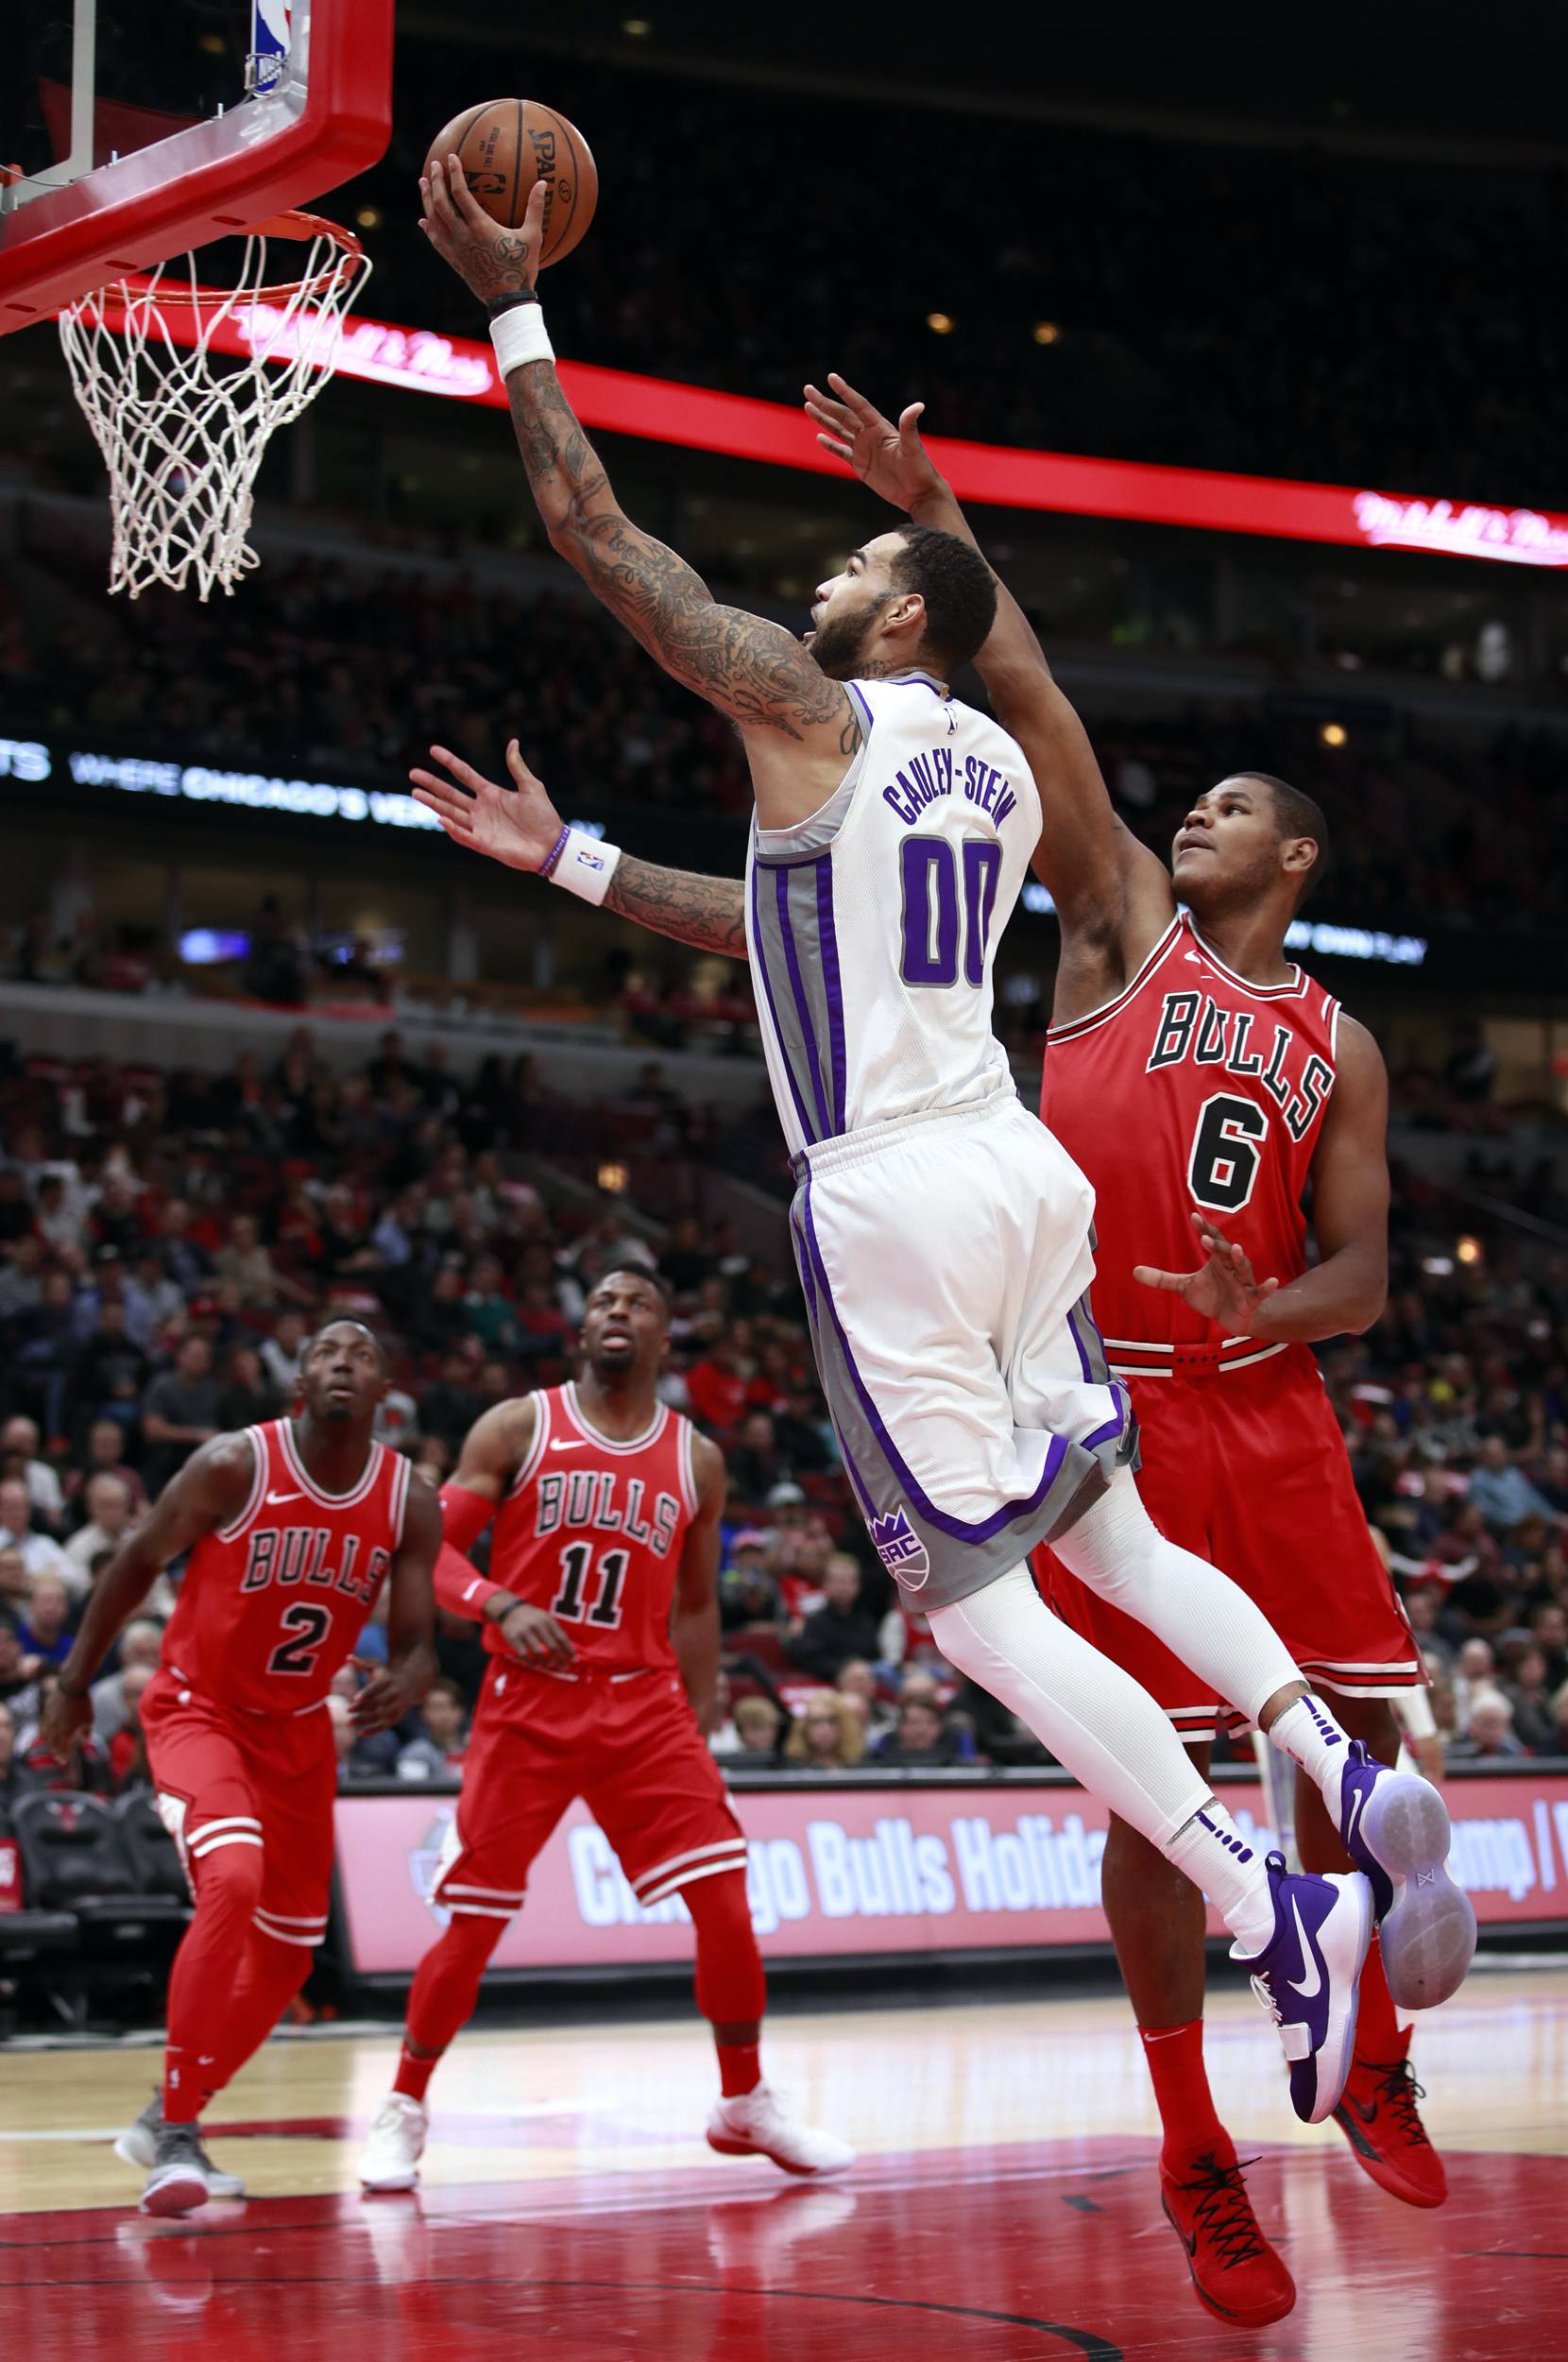 Sacramento Kings center Willie Cauley-Stein (00) goes in for a layup past Chicago Bulls center Cristiano Felicio (6) during the first half in Chicago on Friday.